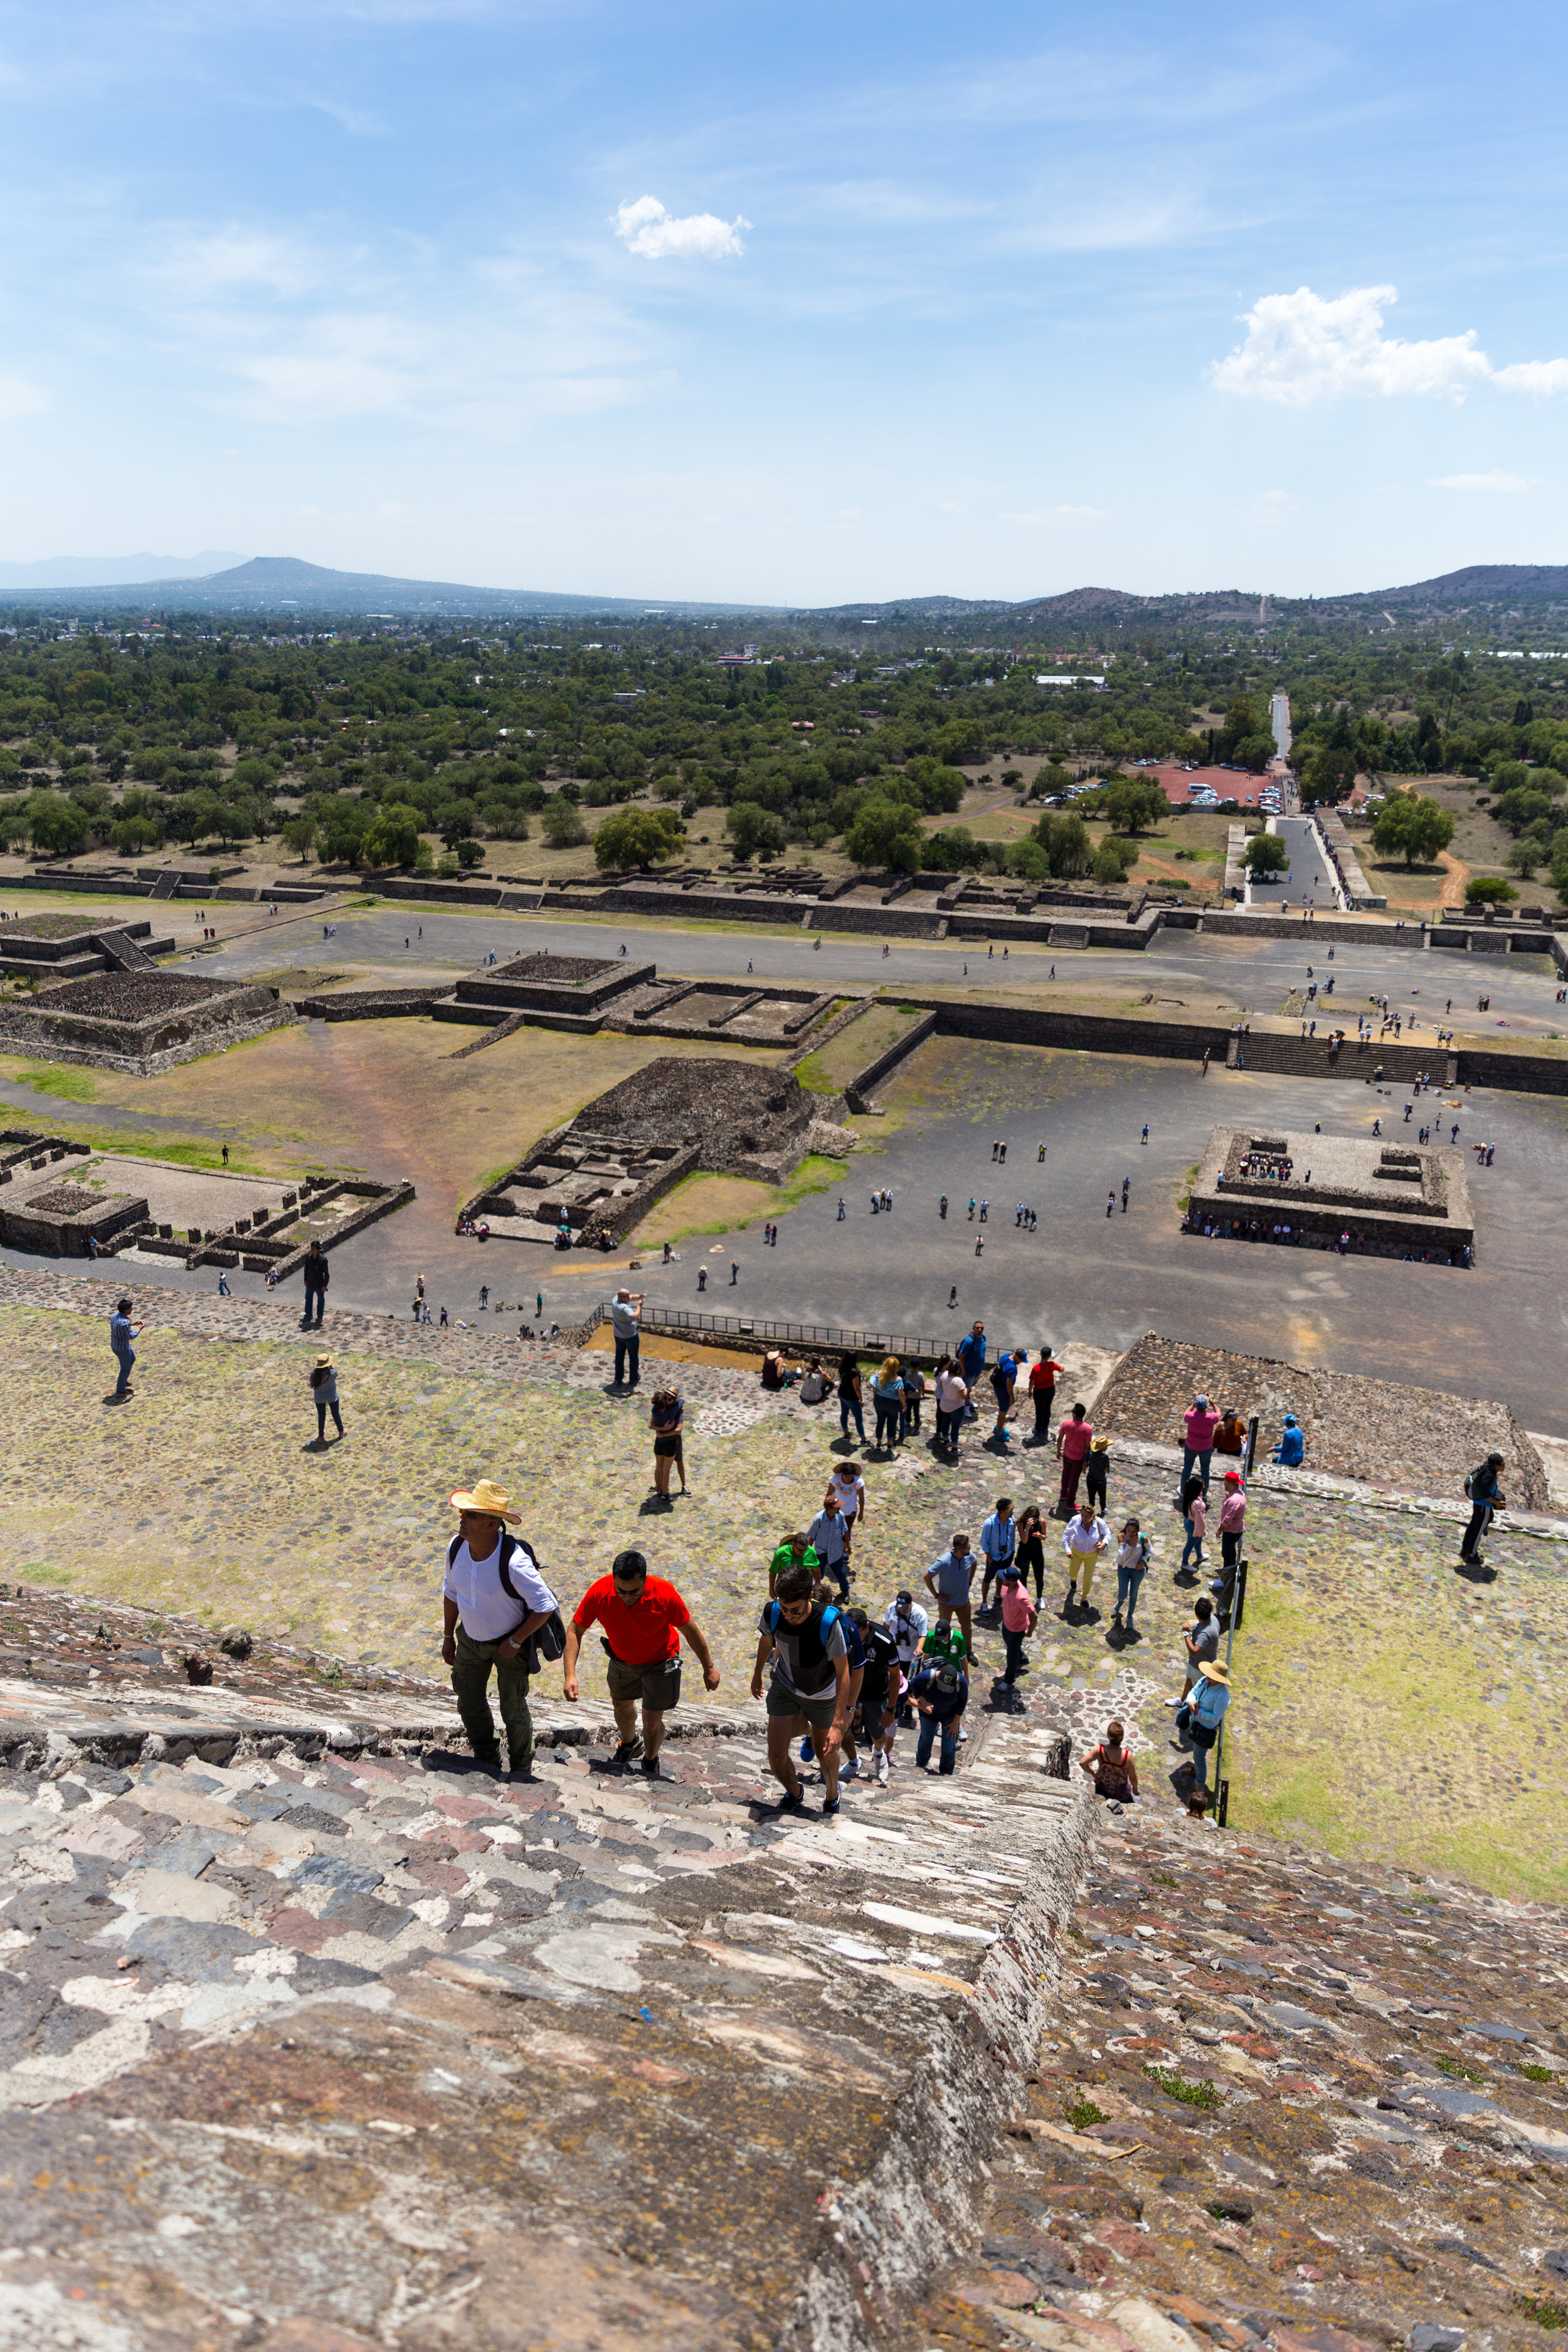 Mexico City Teotihuacan-6.jpg